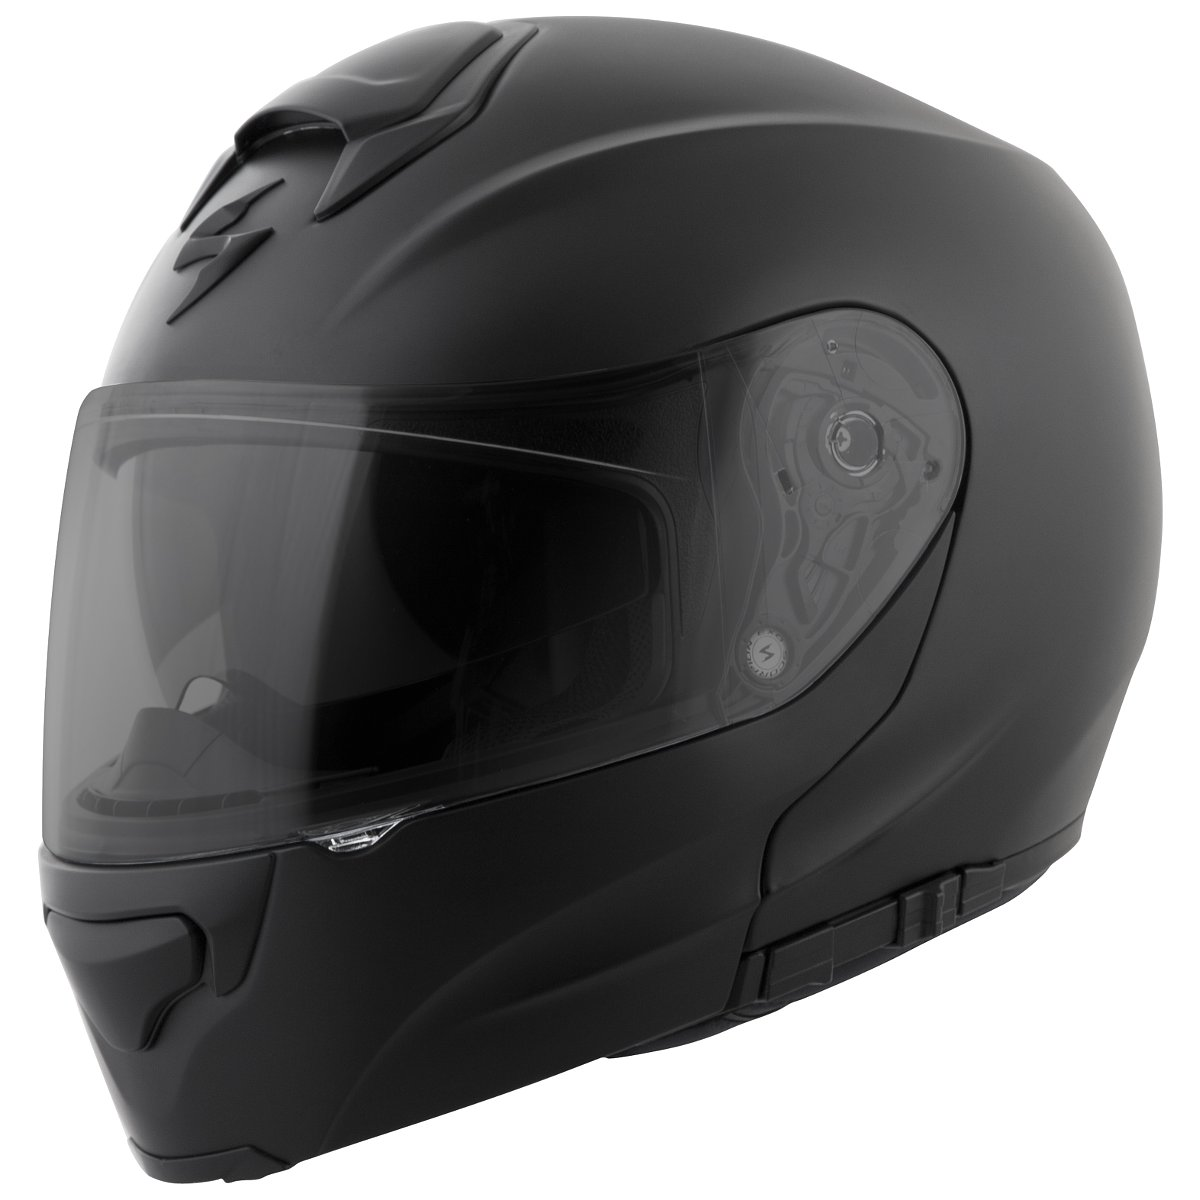 Casco modulare Scorpion Exo 3000 Air nero opaco